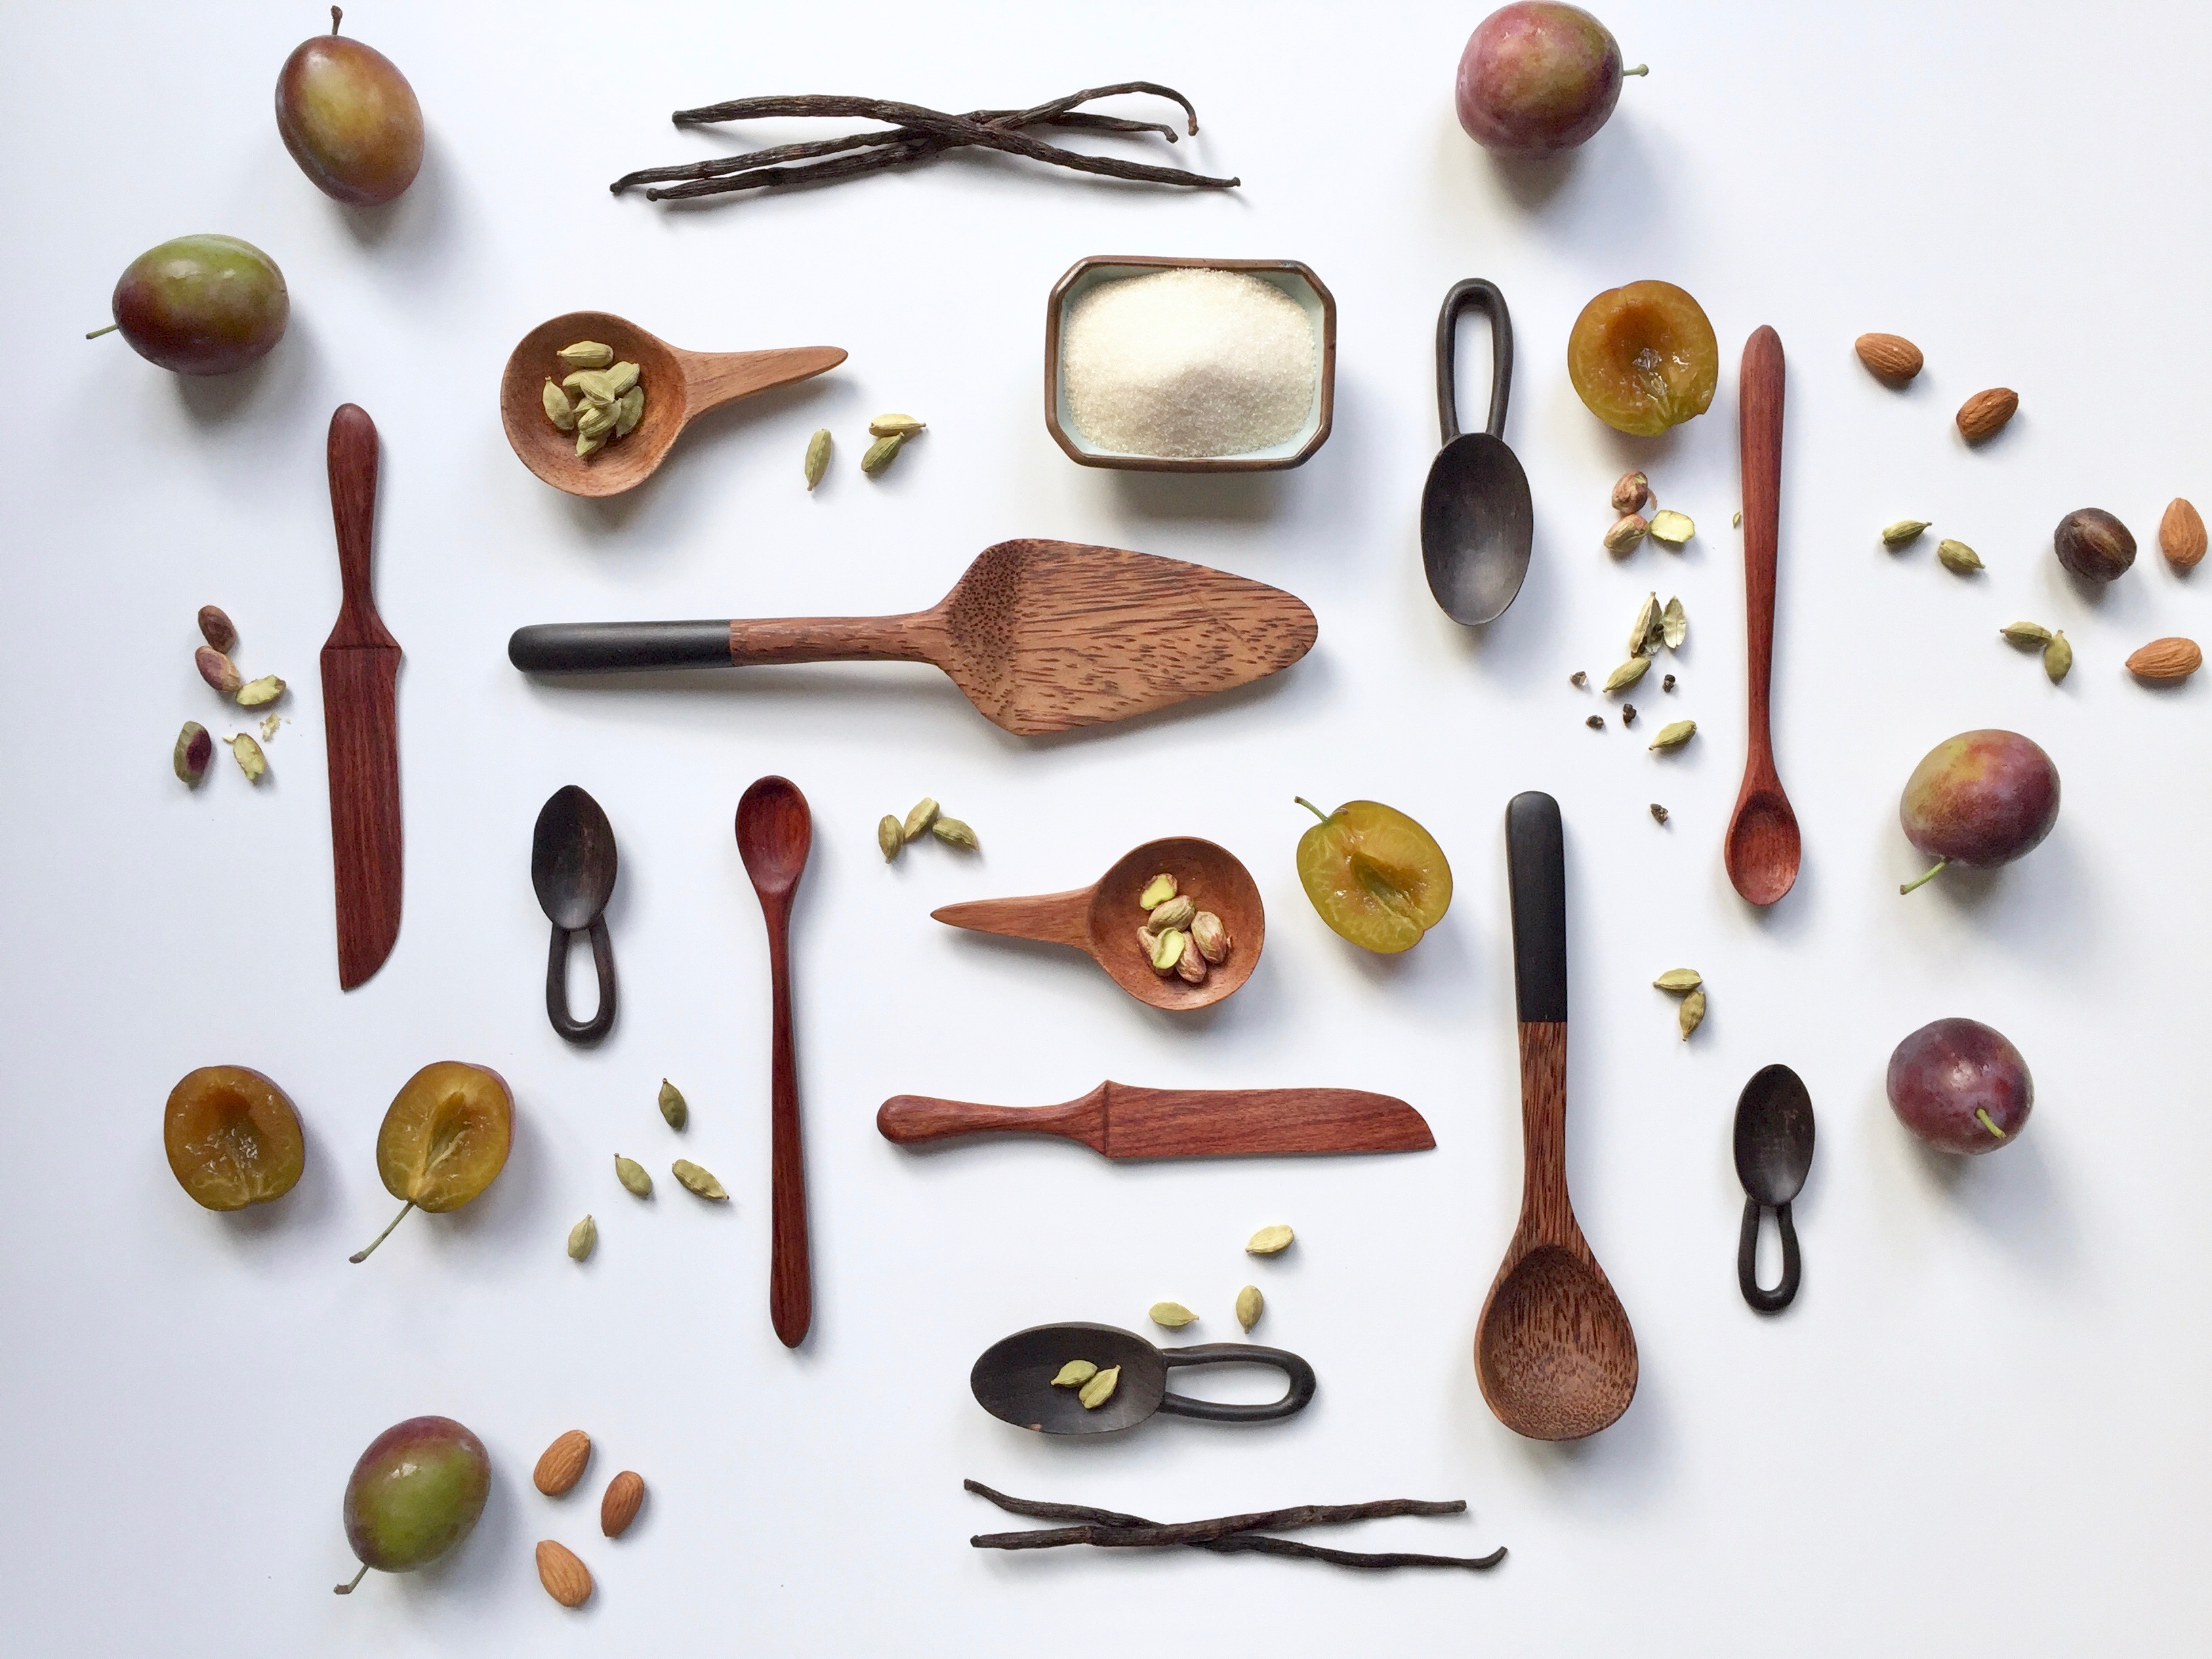 Handcarved Wooden Utensils